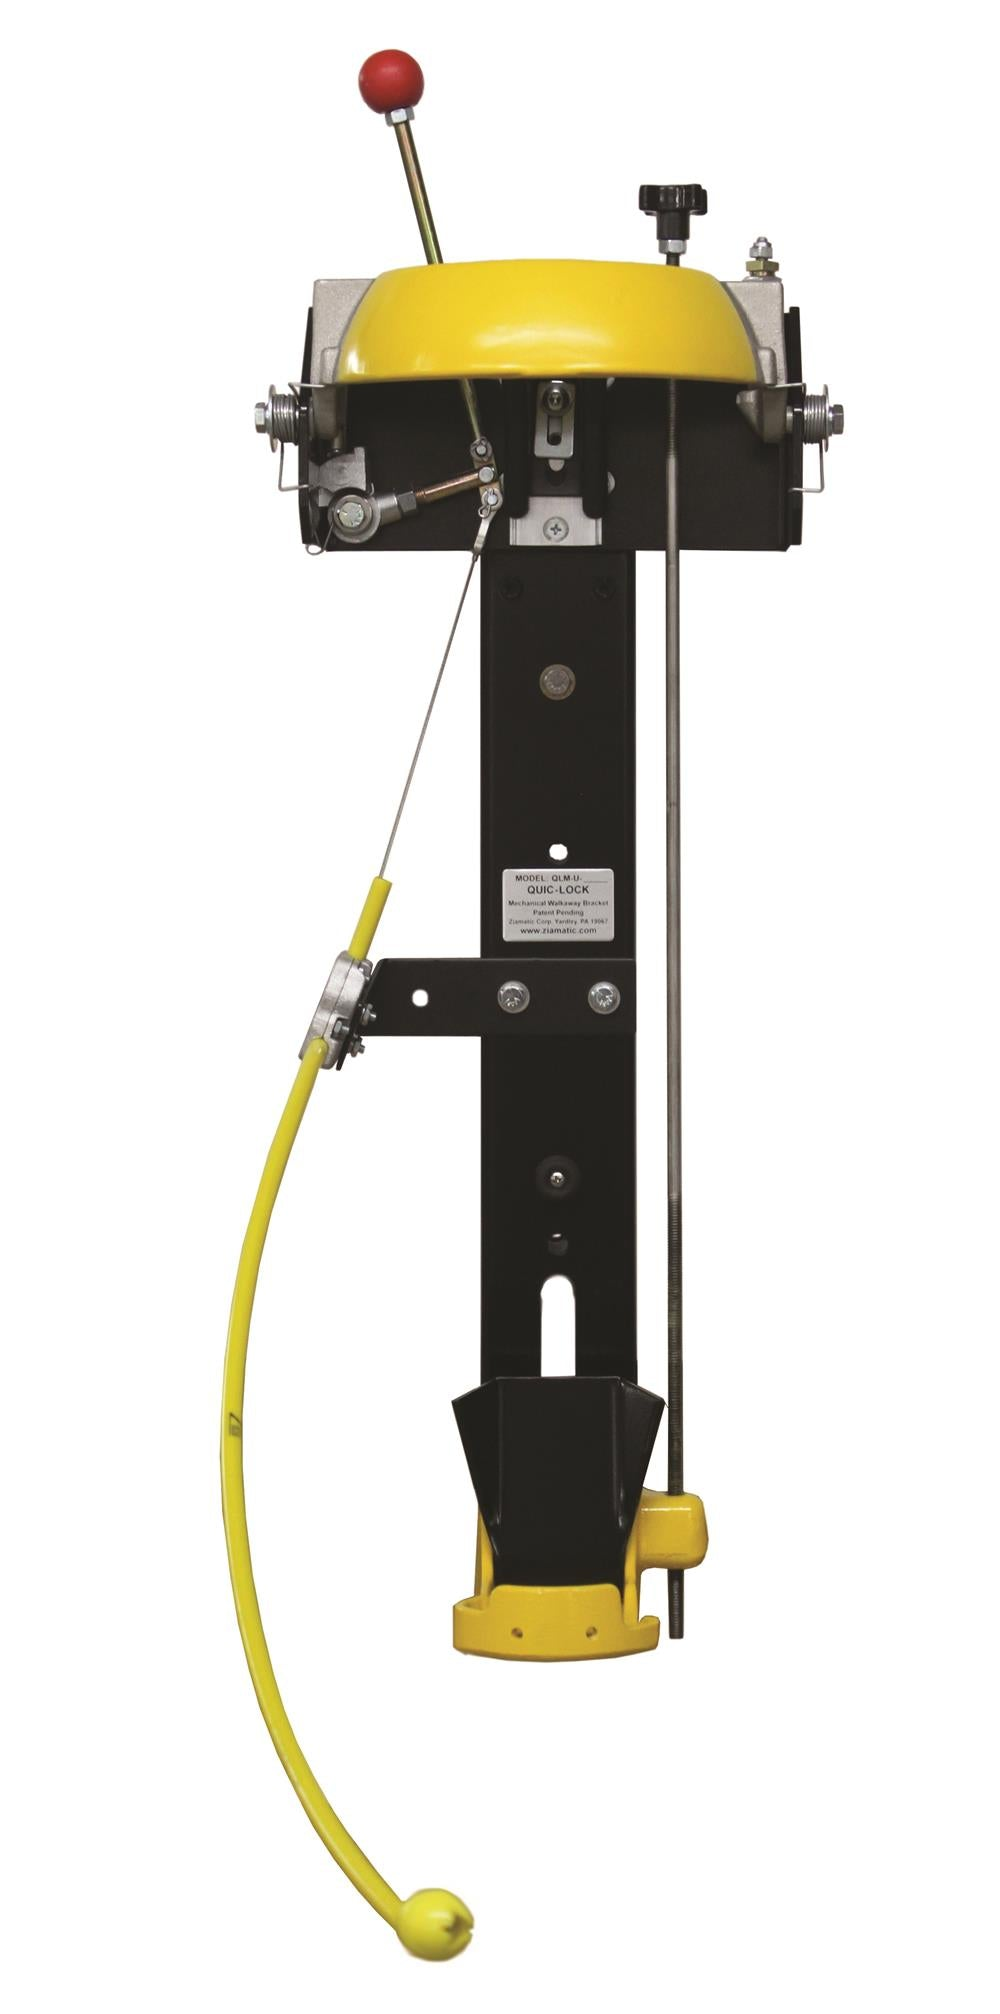 QUIC-LOCK MECHANICAL SCBA BRACKET